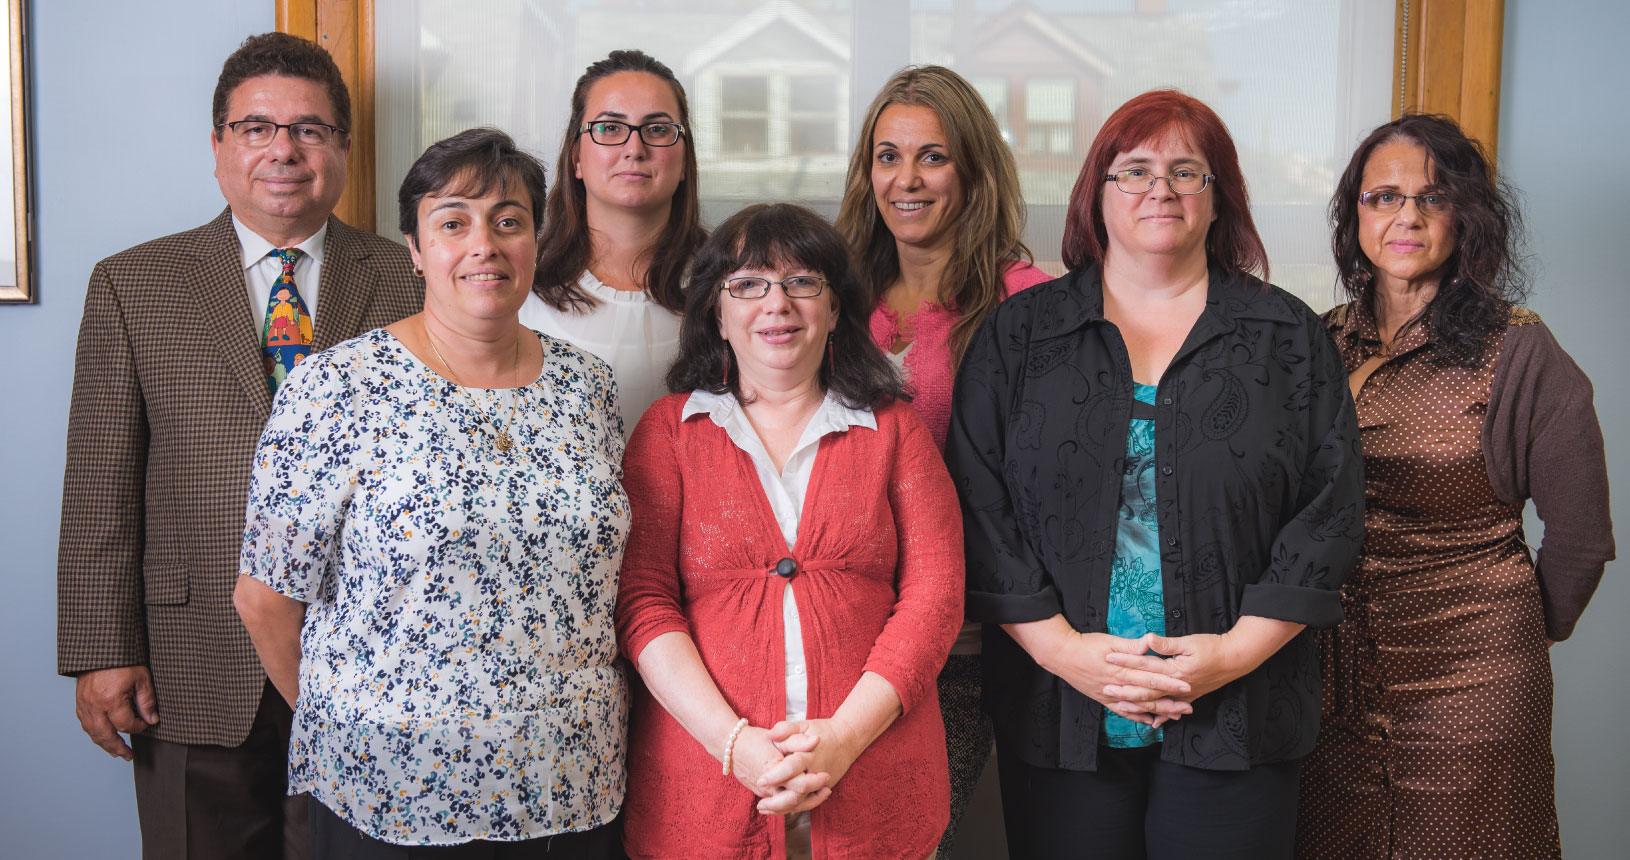 The NCCS Home Child Care Team posing for a photo. Six women and one man.